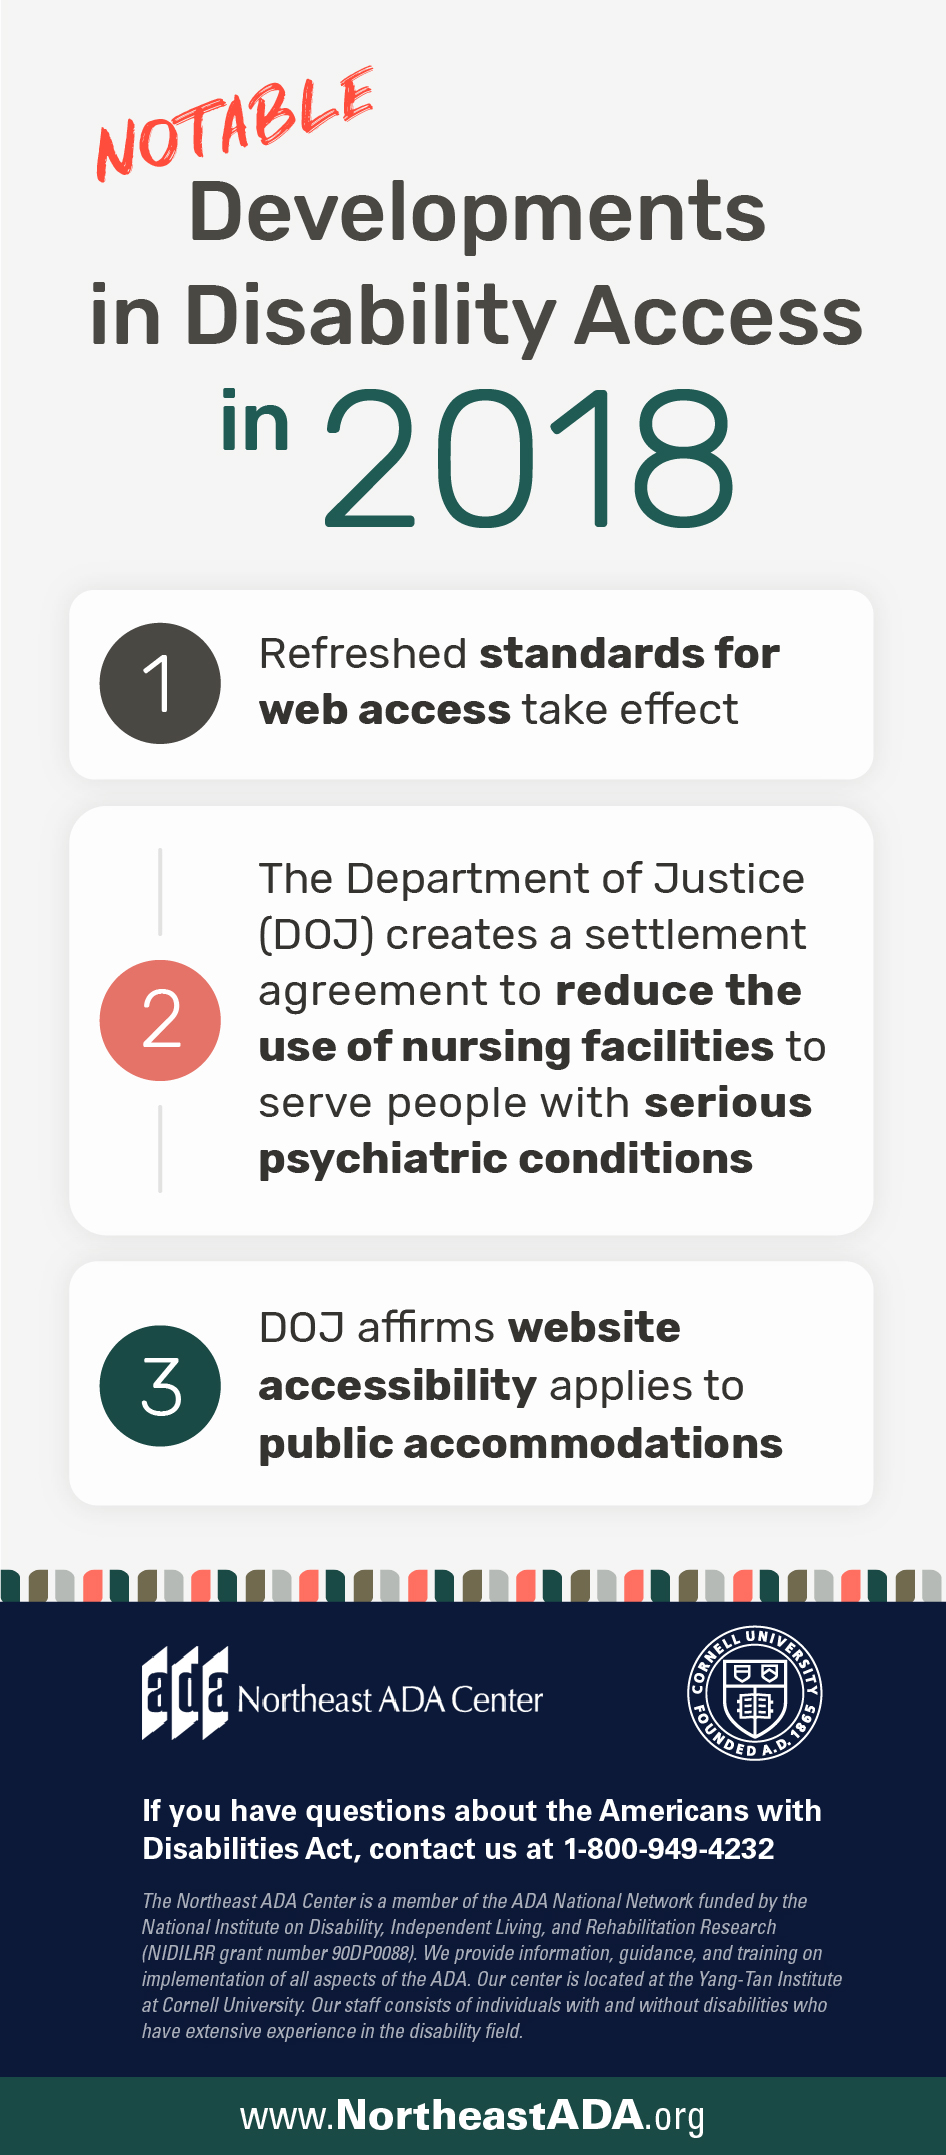 Infographic titled 'Notable Developments in Disability Access in 2018' featuring several text boxes:  1. Refreshed standards for web access take effect.  2. The Department of Justice (DOJ) creates a settlement agreement to reduce the user of nursing facilities to serve people with serious psychiatric conditions.  3. DOJ affirms website accessibility applies to public accommodations.  If you have questions about the Americans with Disabilities Act, contact the Northeast ADA Center at 1-800-949-4232